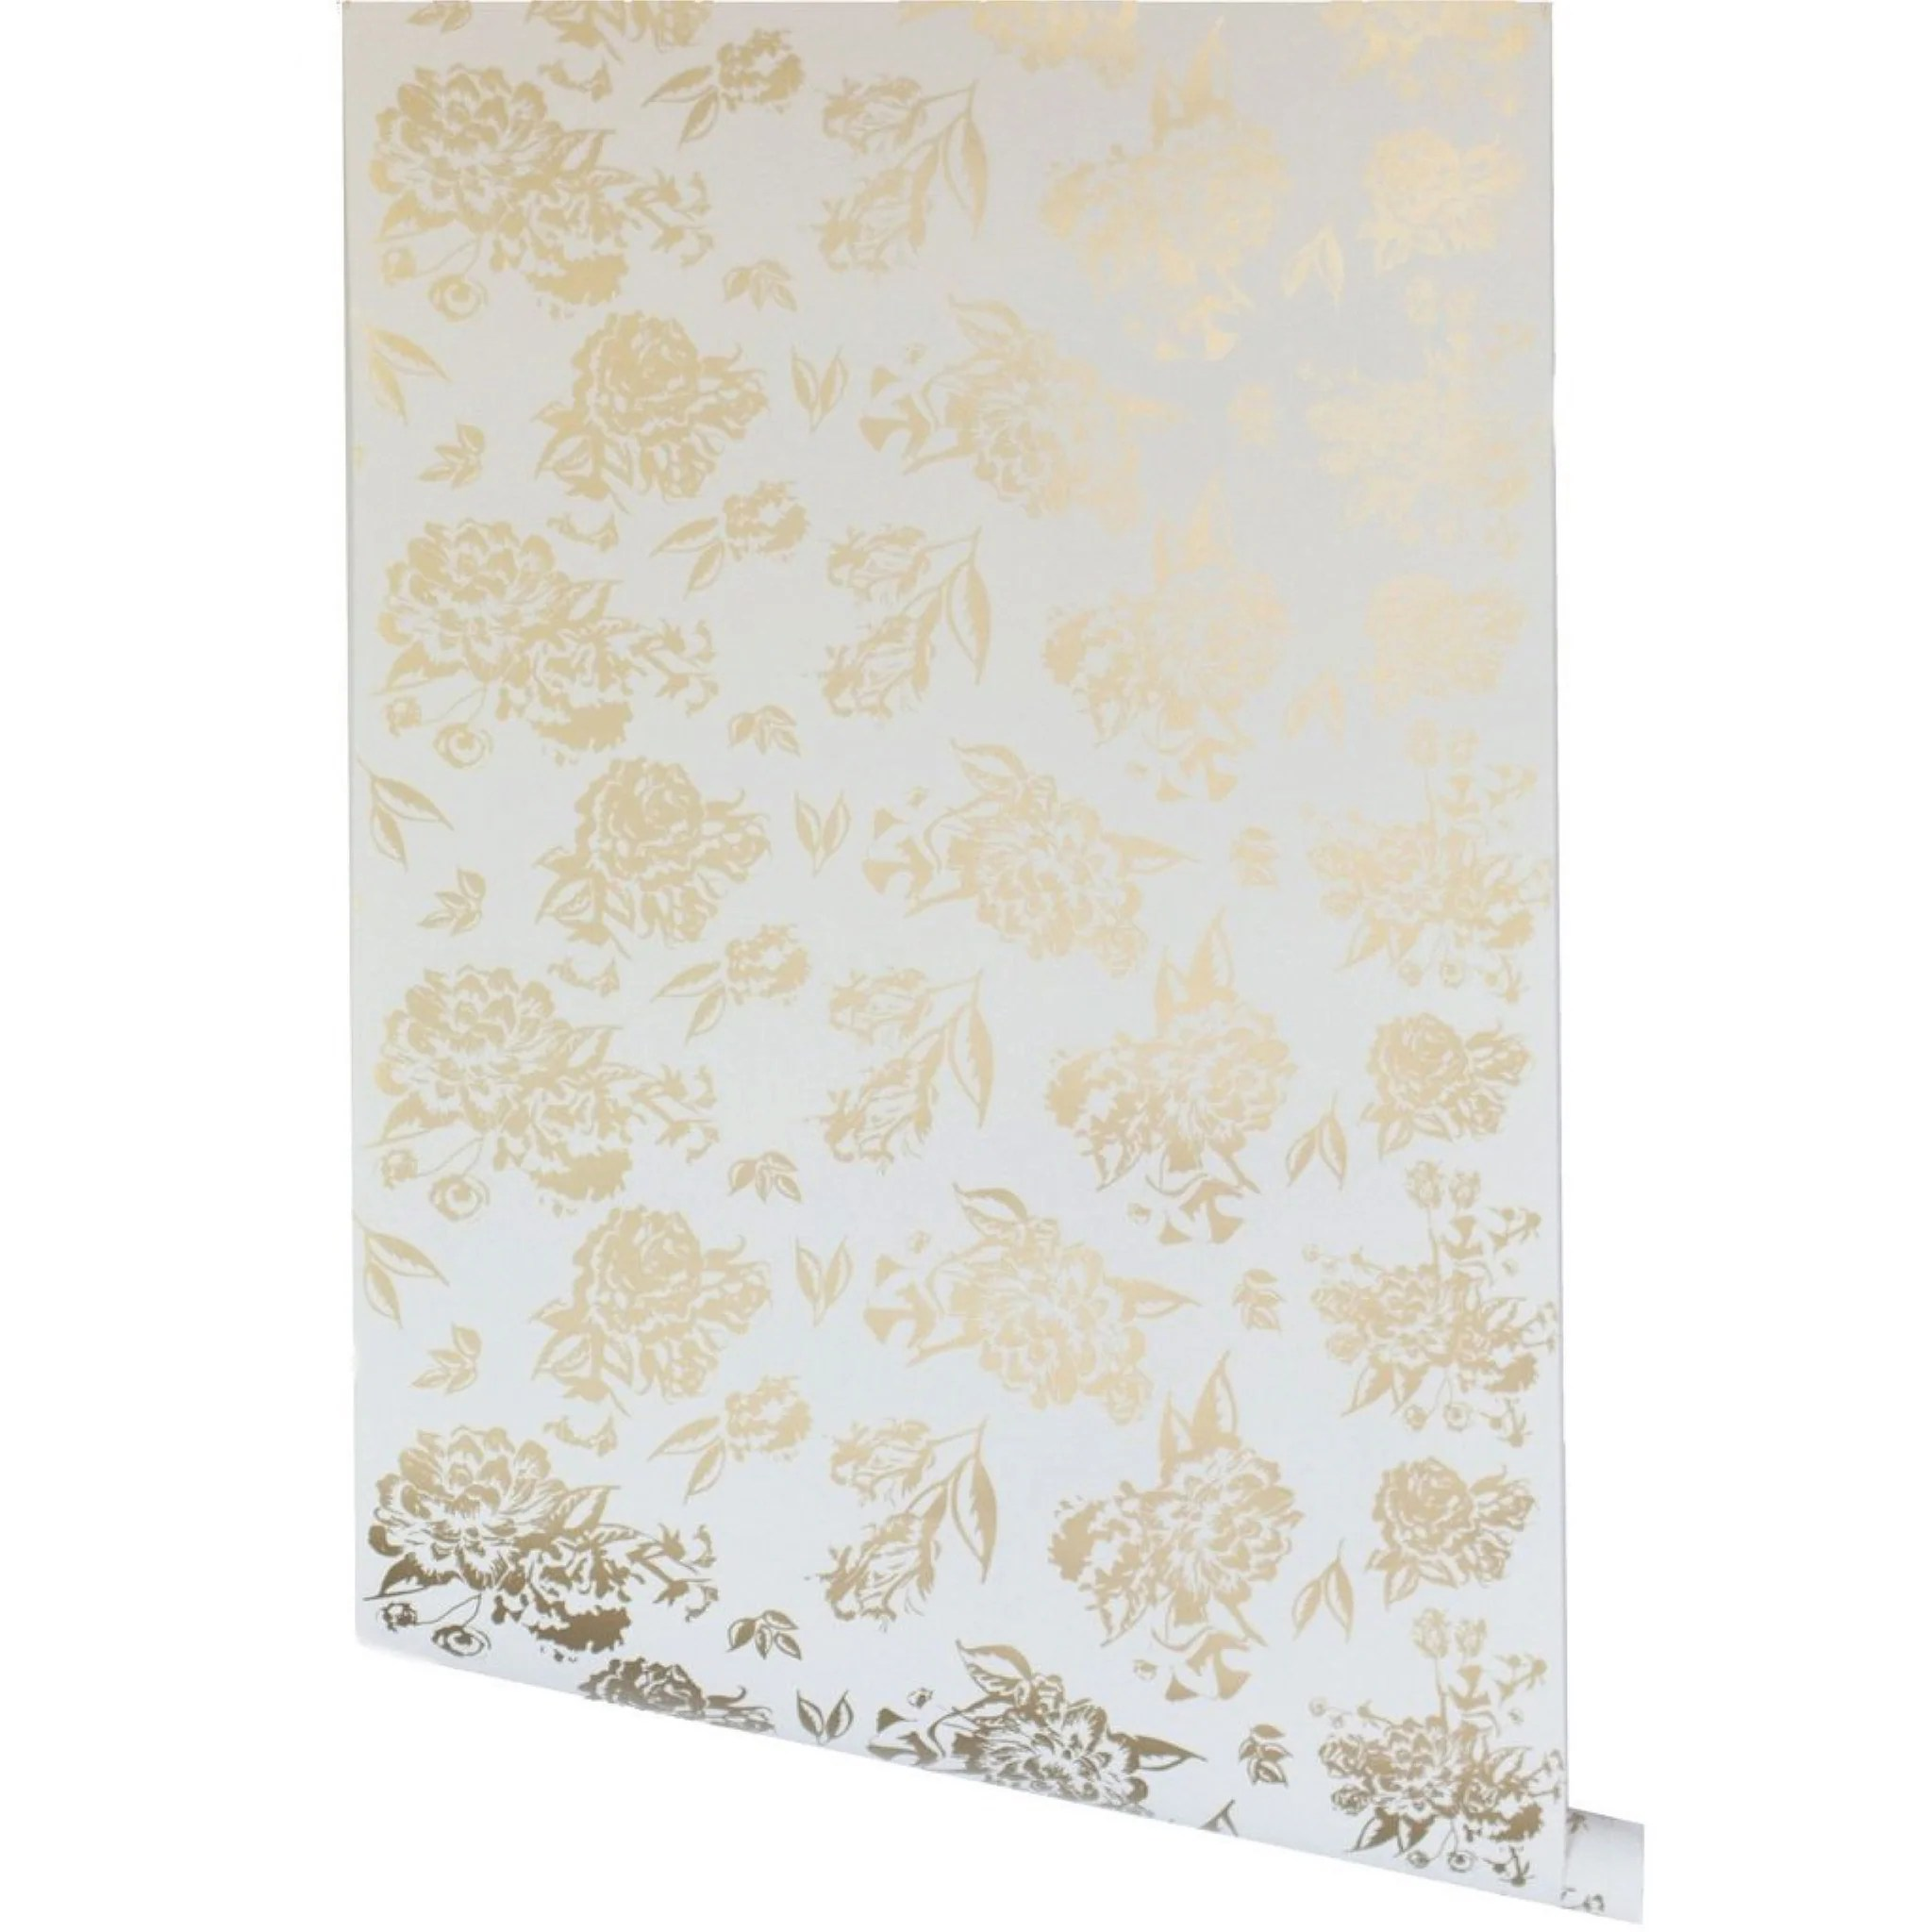 Metallic Gold Wallpaper Vivienne Floral Wallpaper Metallic Gold